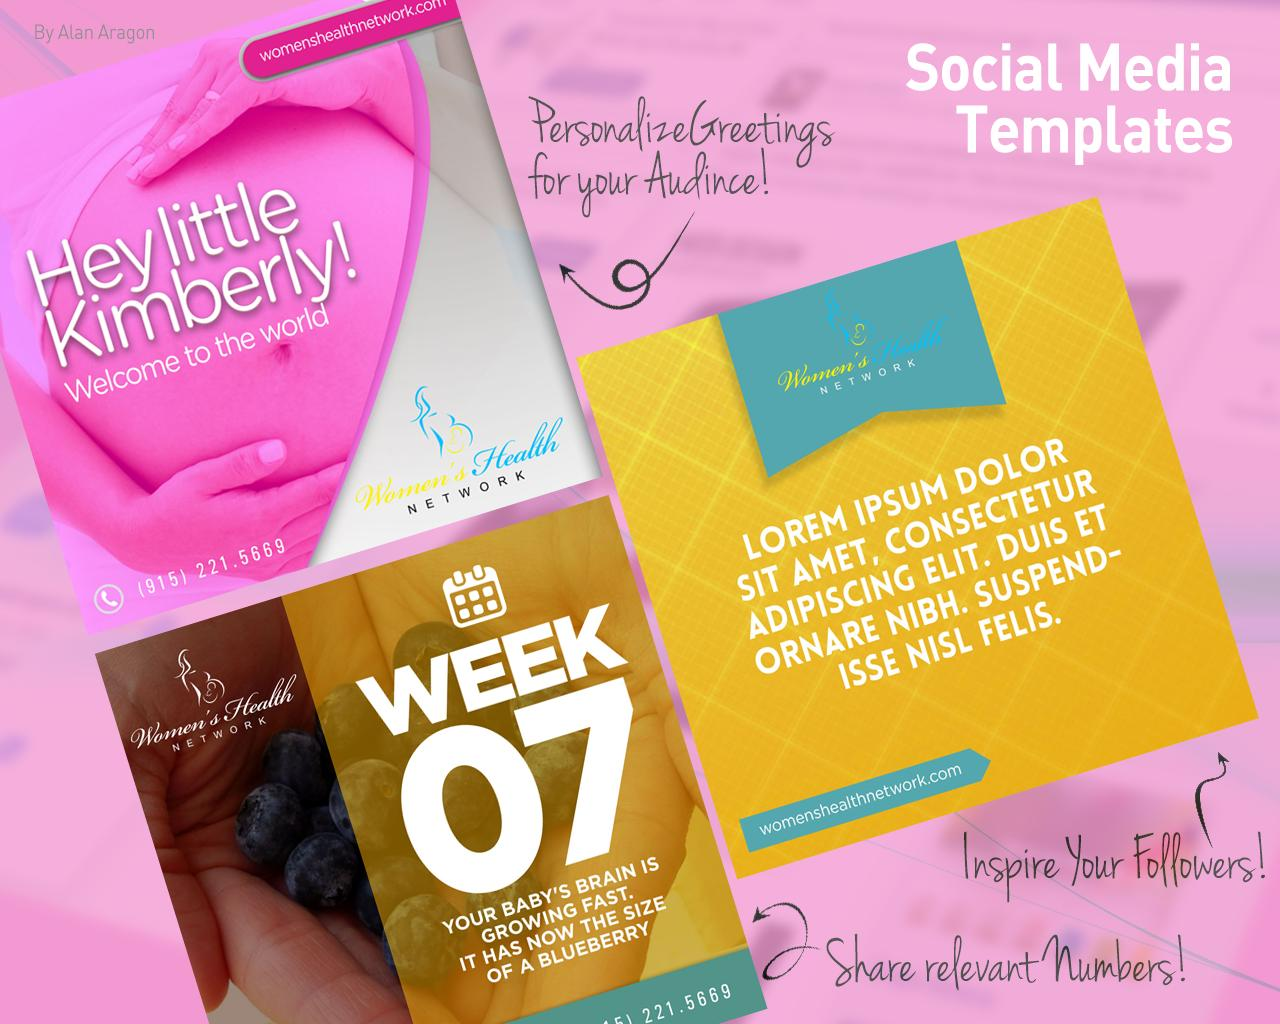 Psd social media templates by alanthedesigner on envato studio for Social media templates psd